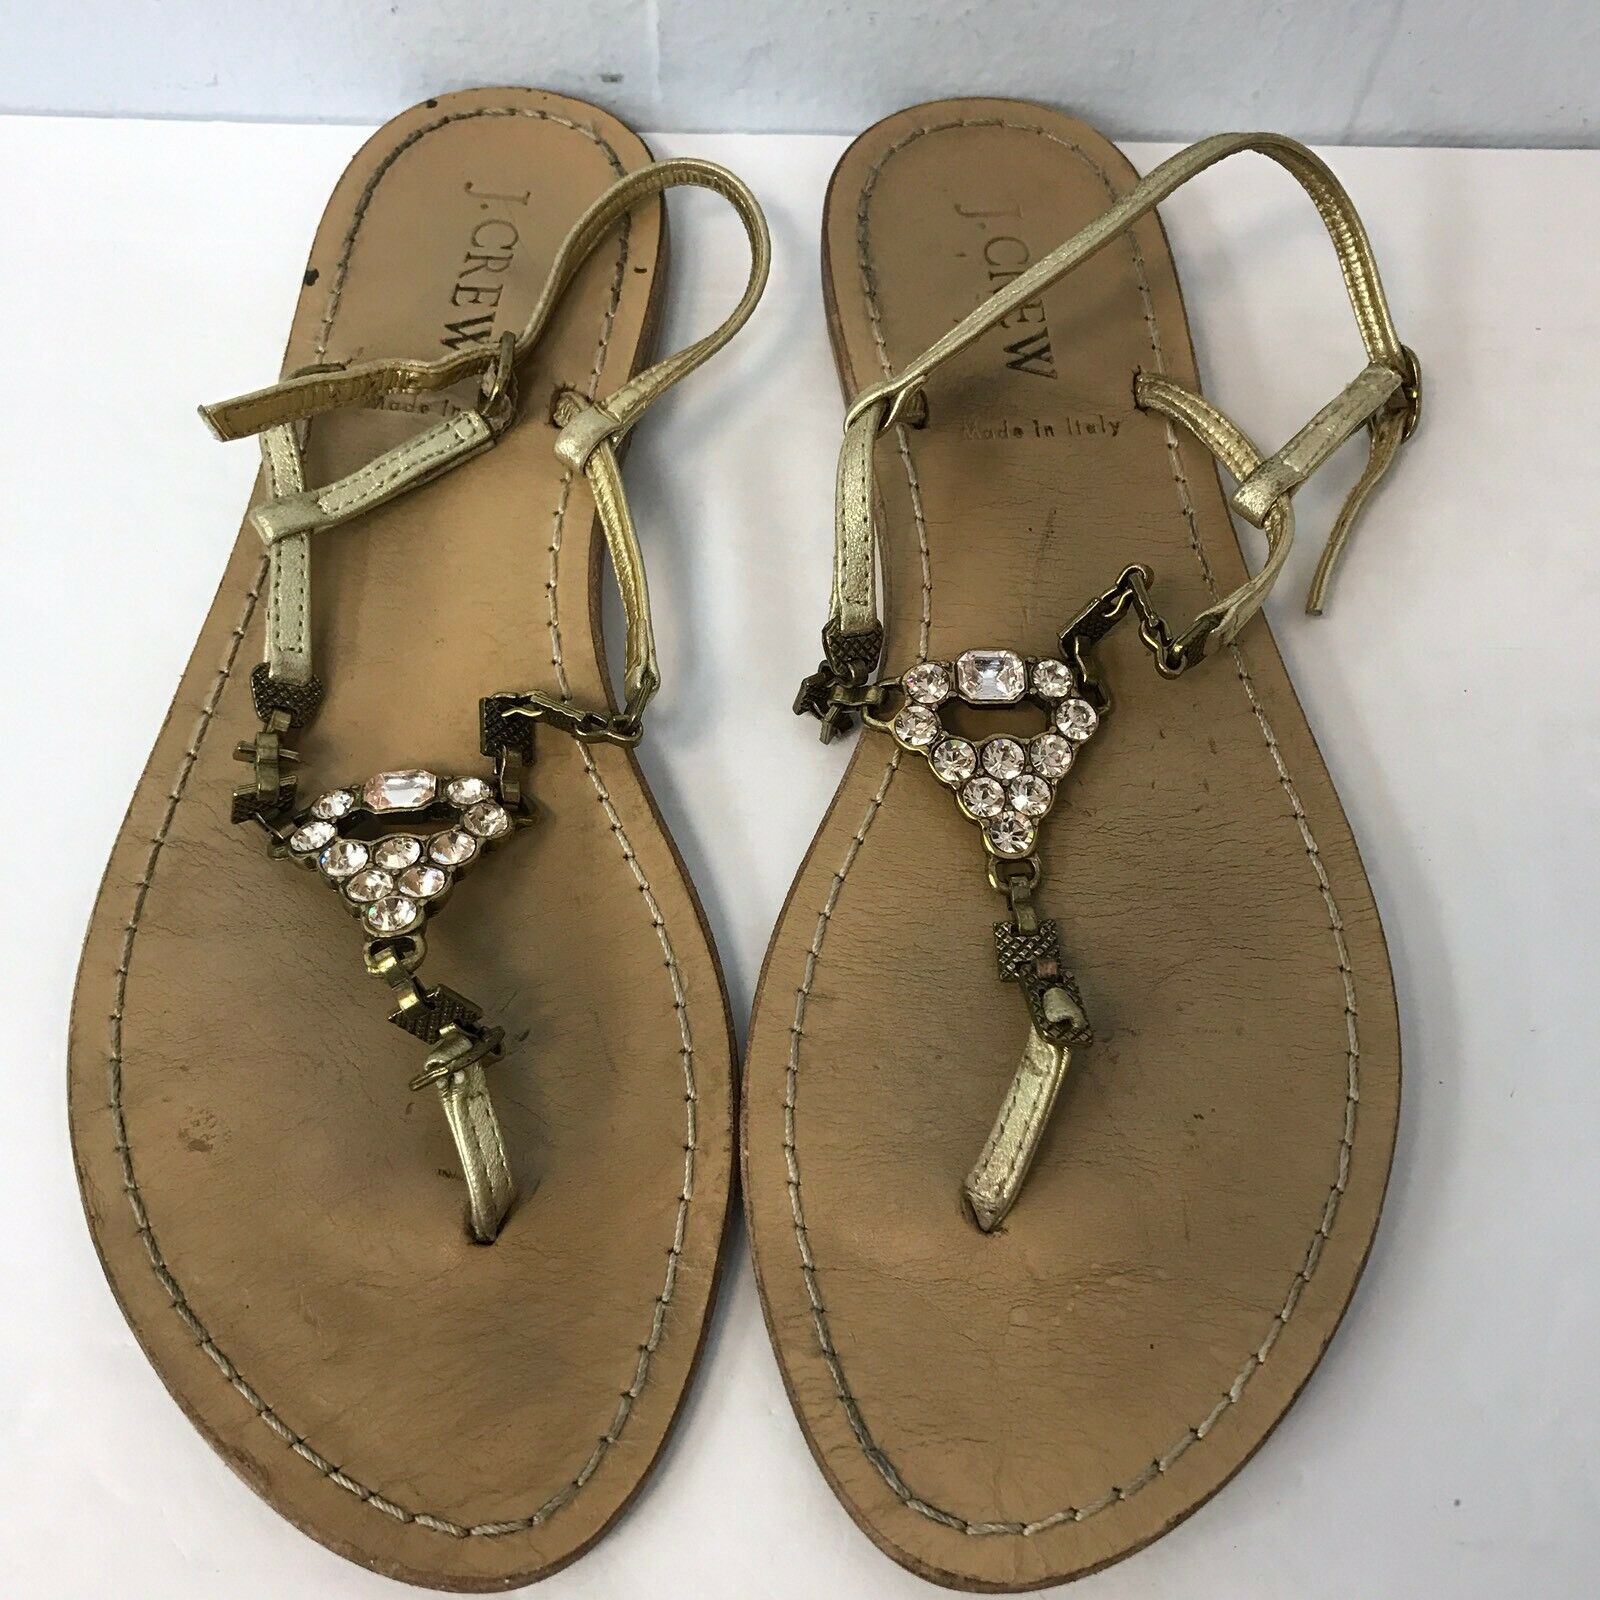 j 7 crew sandals Women Size 7 j Gold Leather Upper fbcf22